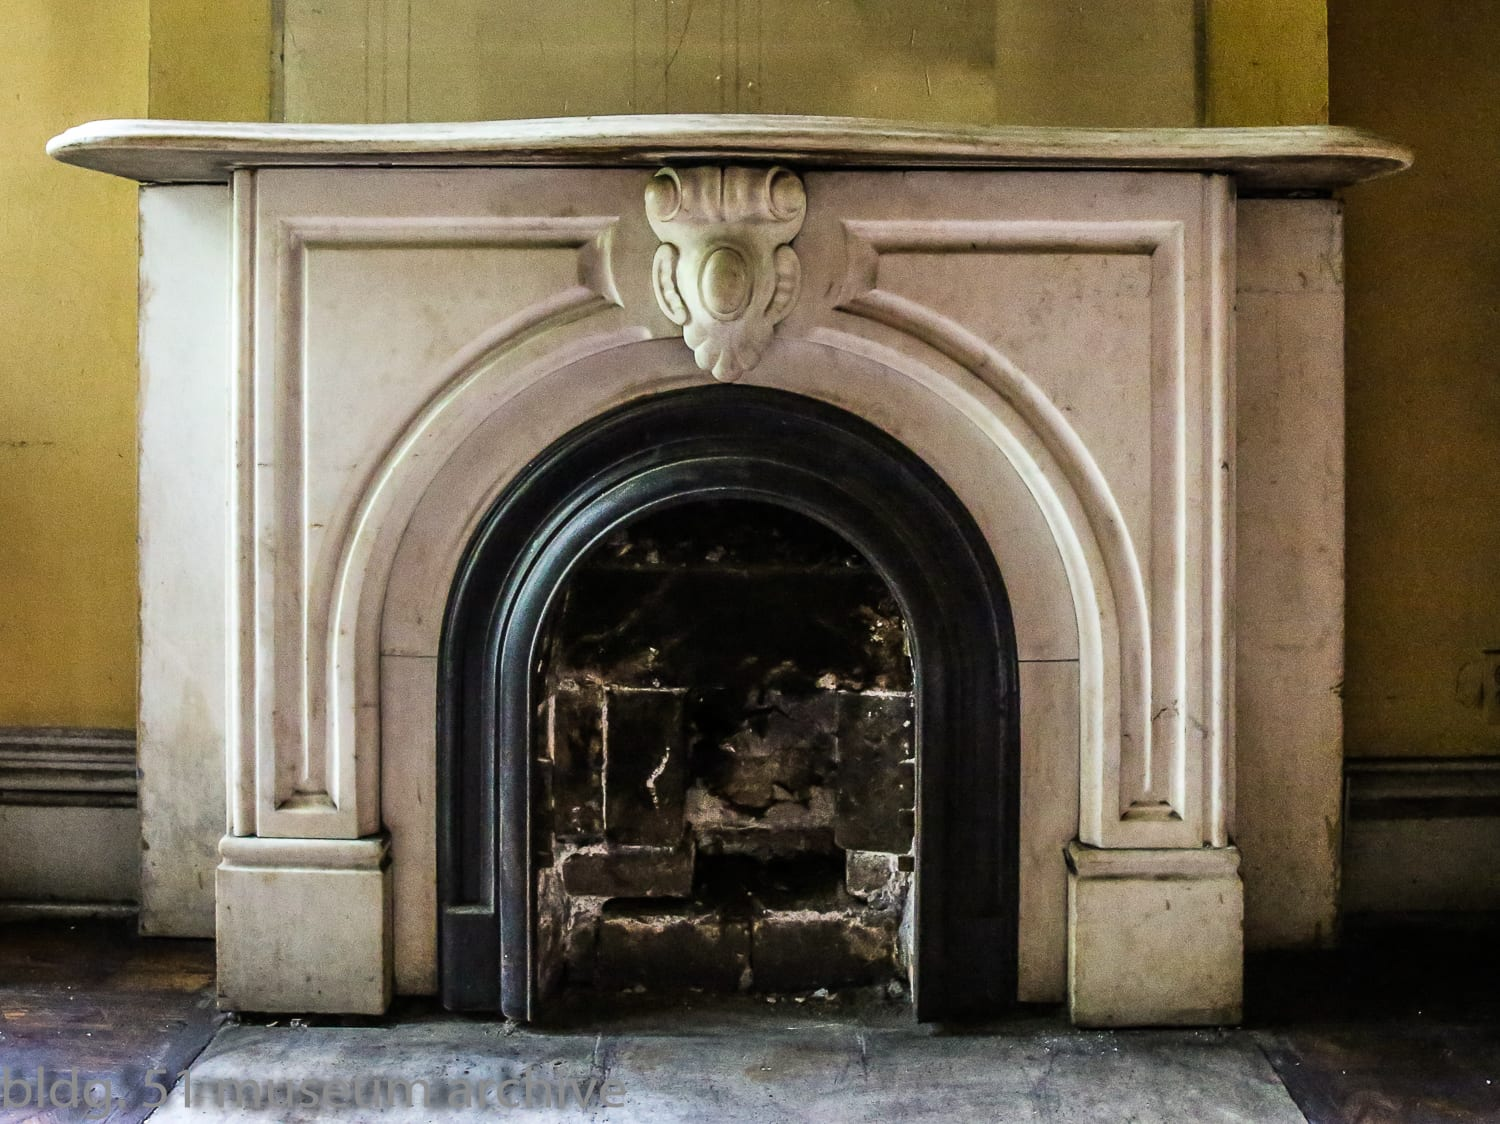 photographic study of post fire italianate row house interior